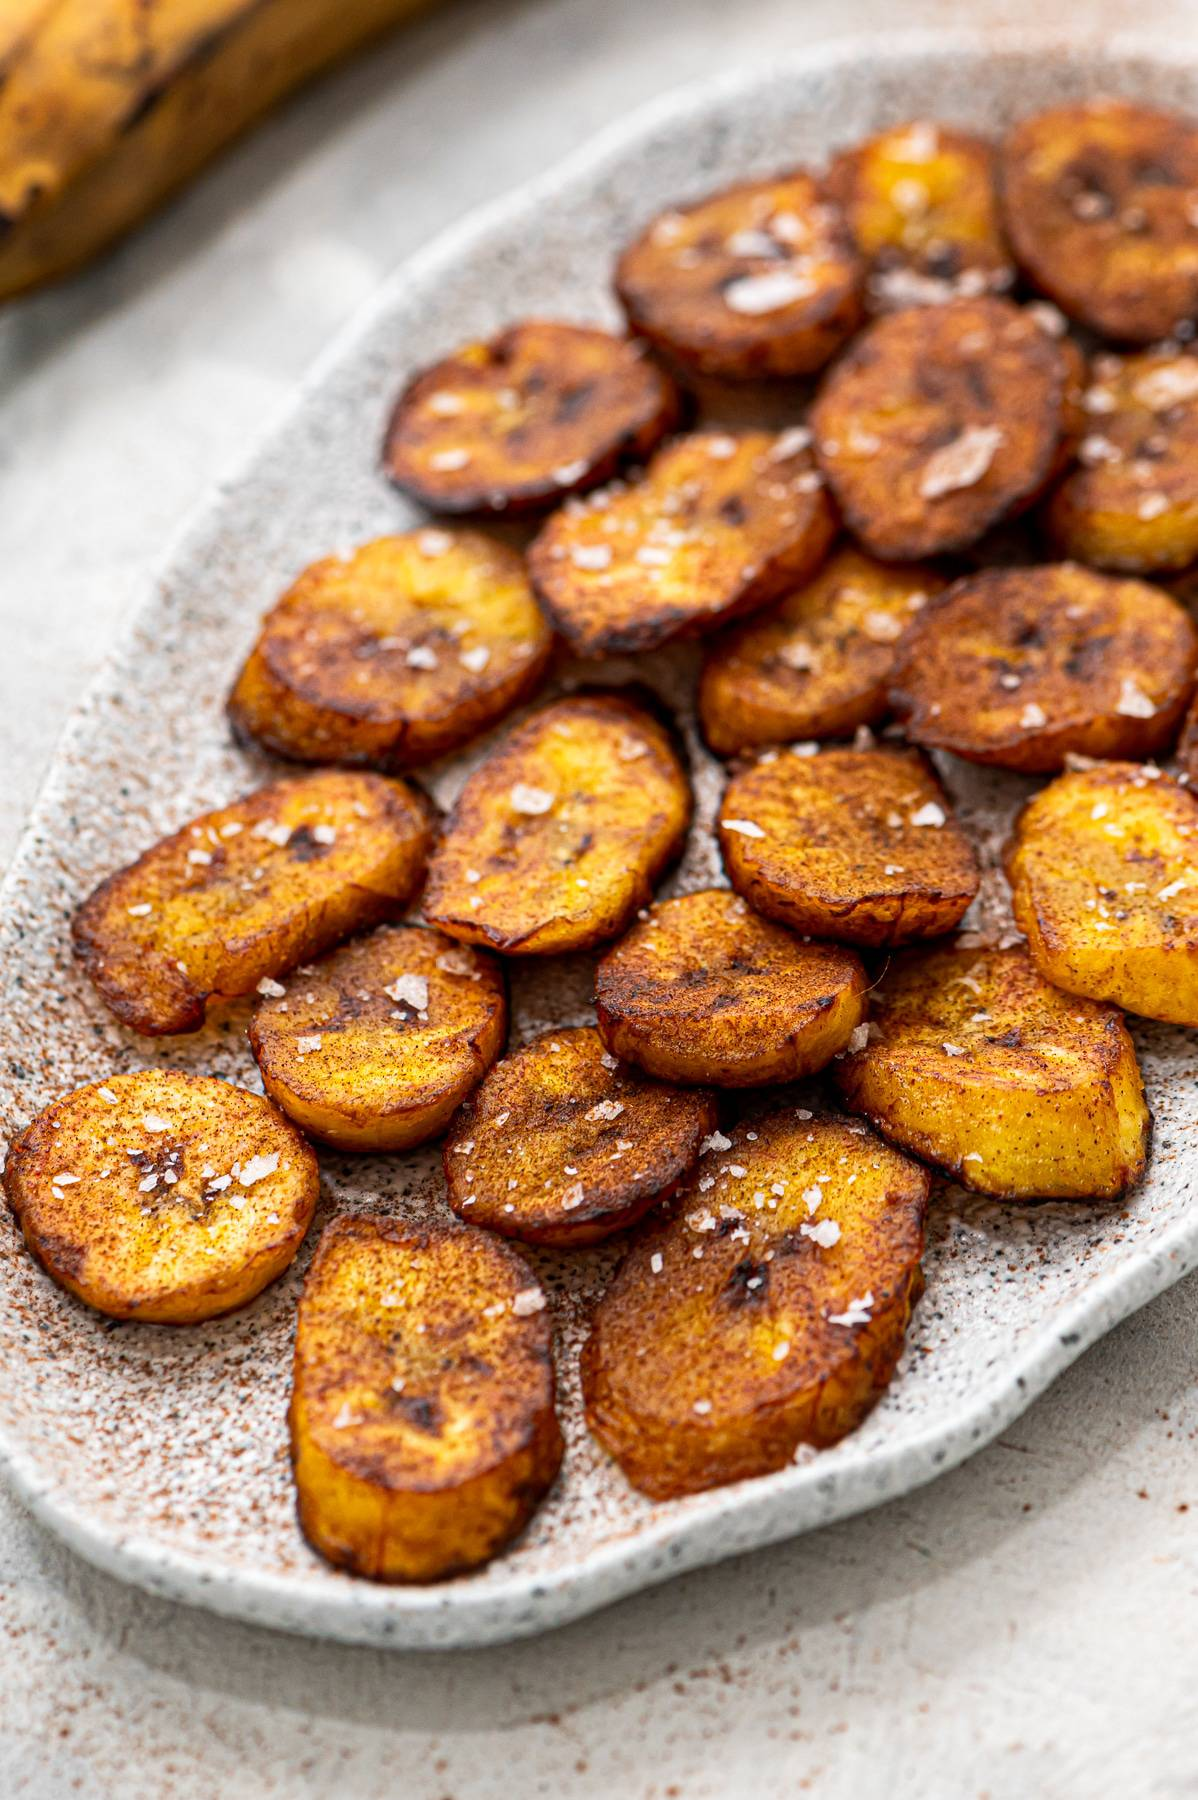 Fried sweet plantains on a plate.